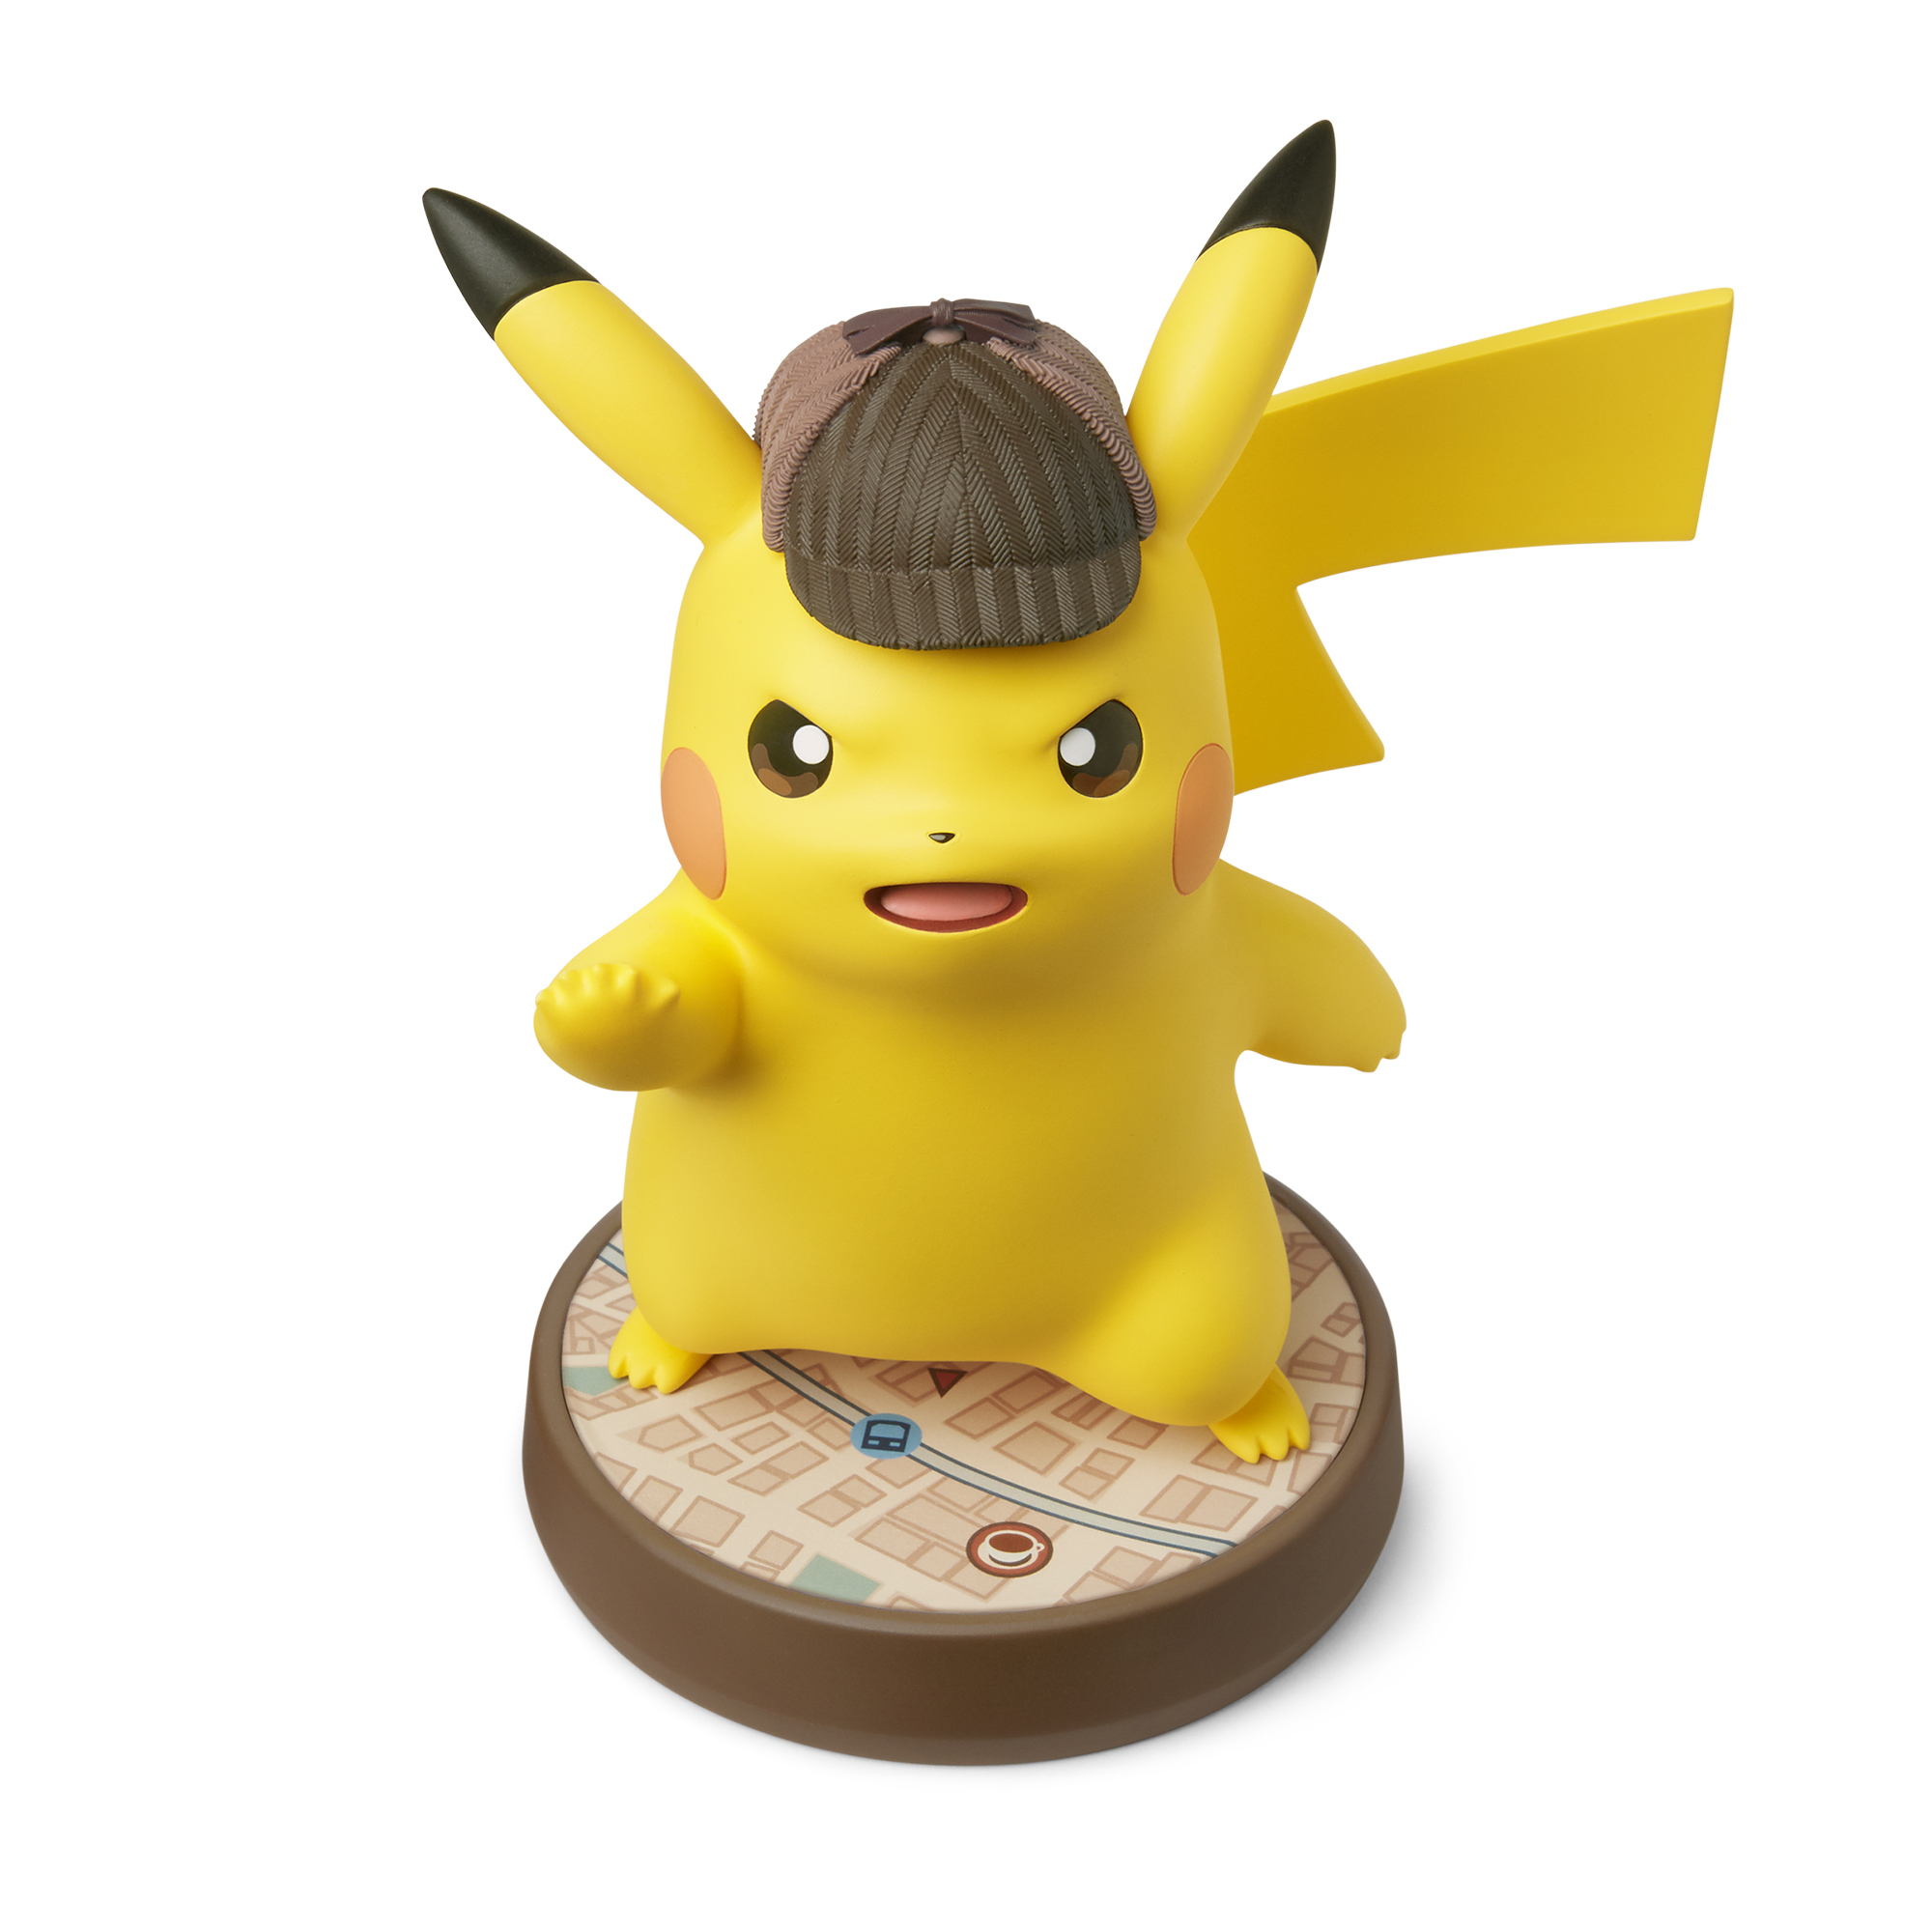 Correcting And Replacing New Nintendo 2ds Xl Pikachu Edition